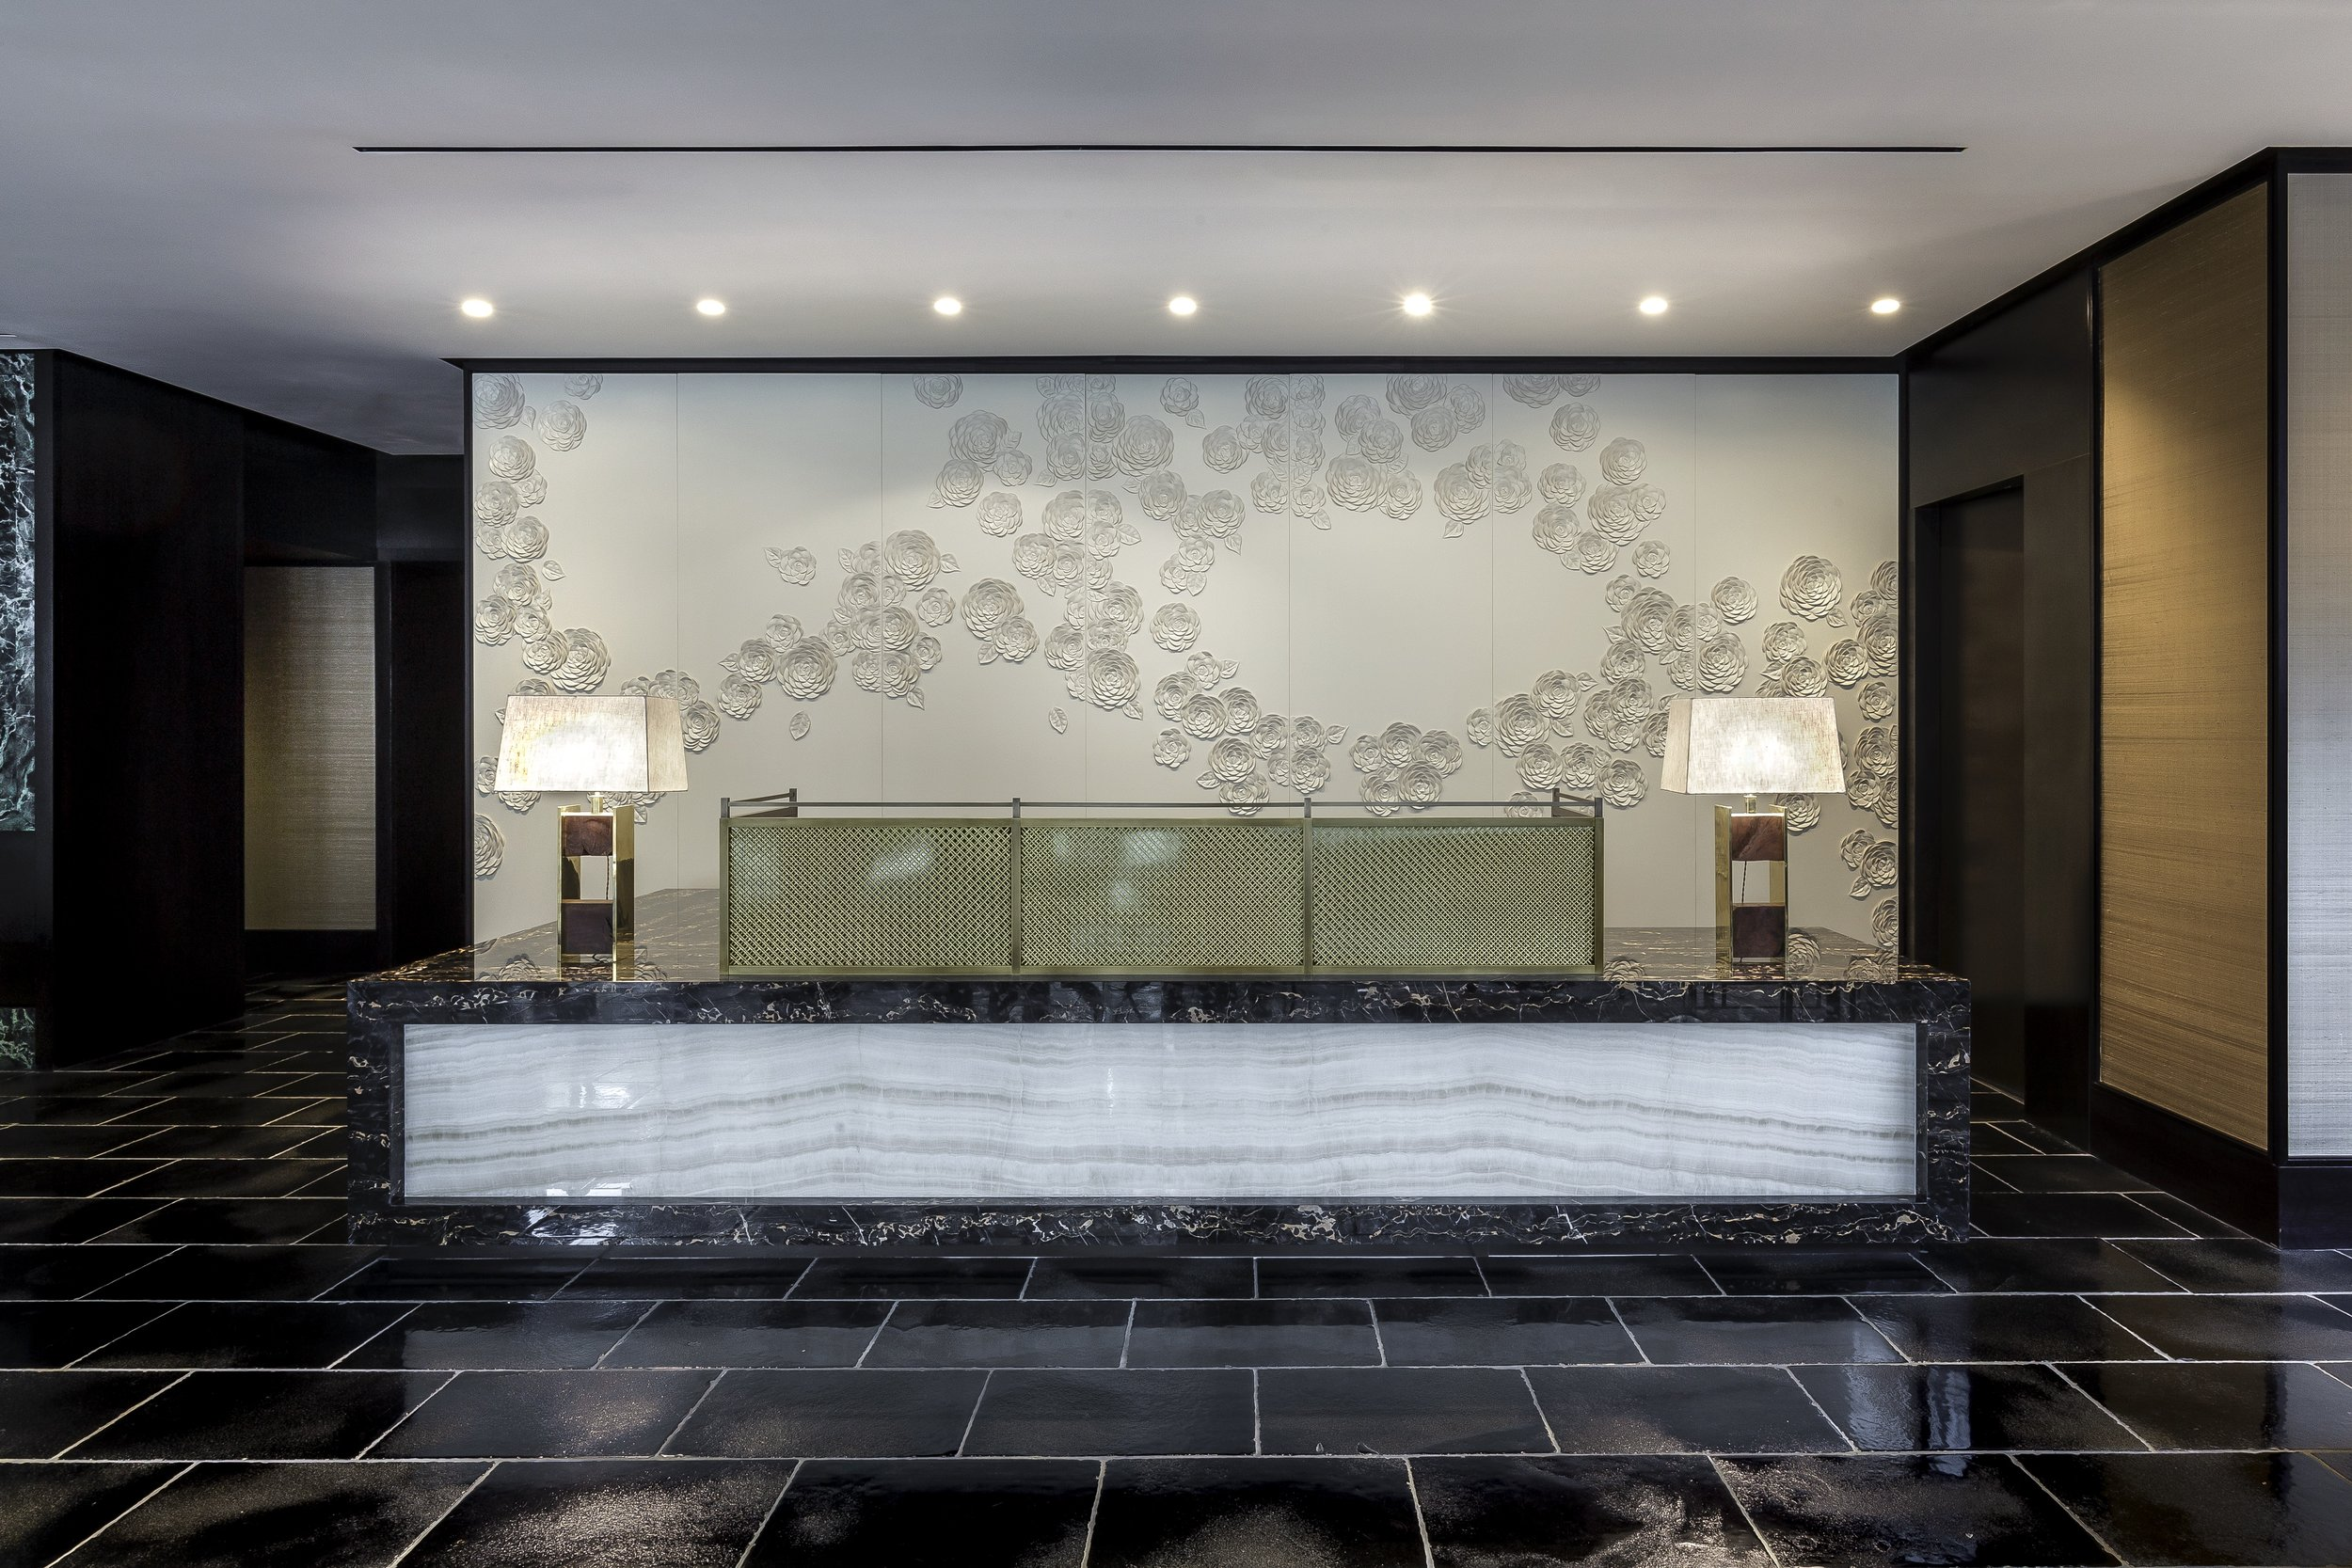 The Concierge Lobby at The Pacific SF